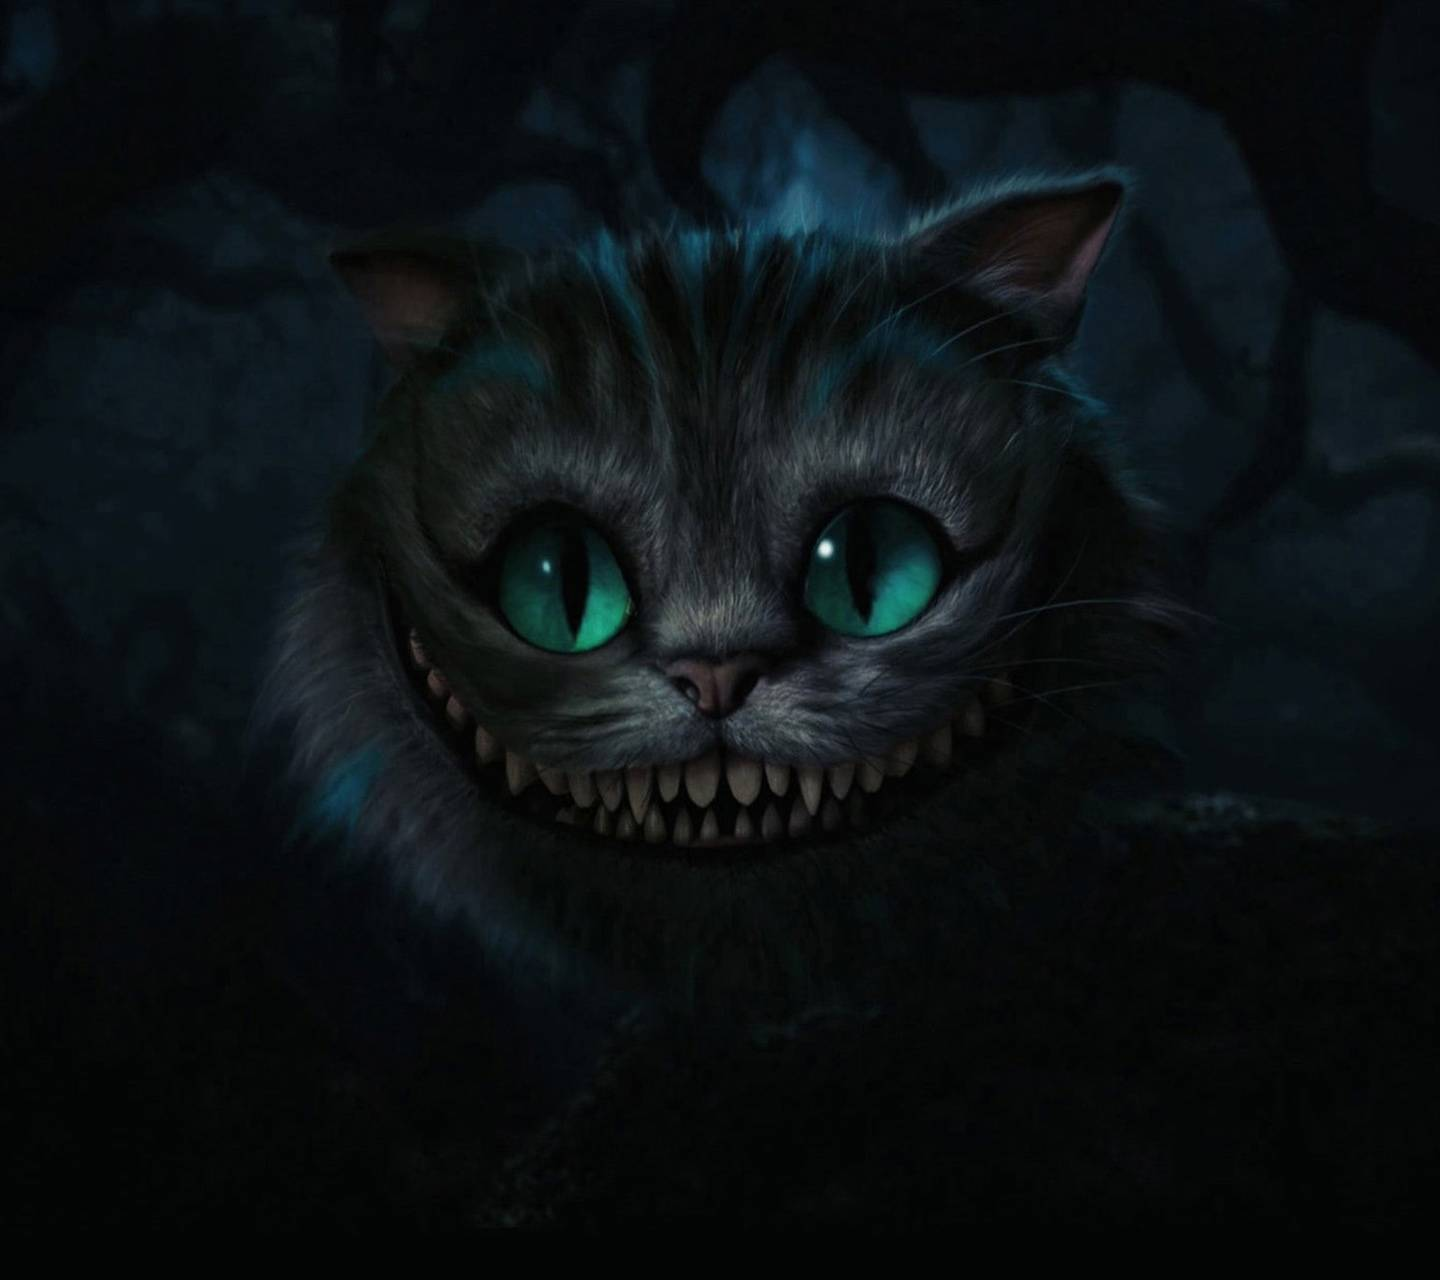 Horror Cat Hd